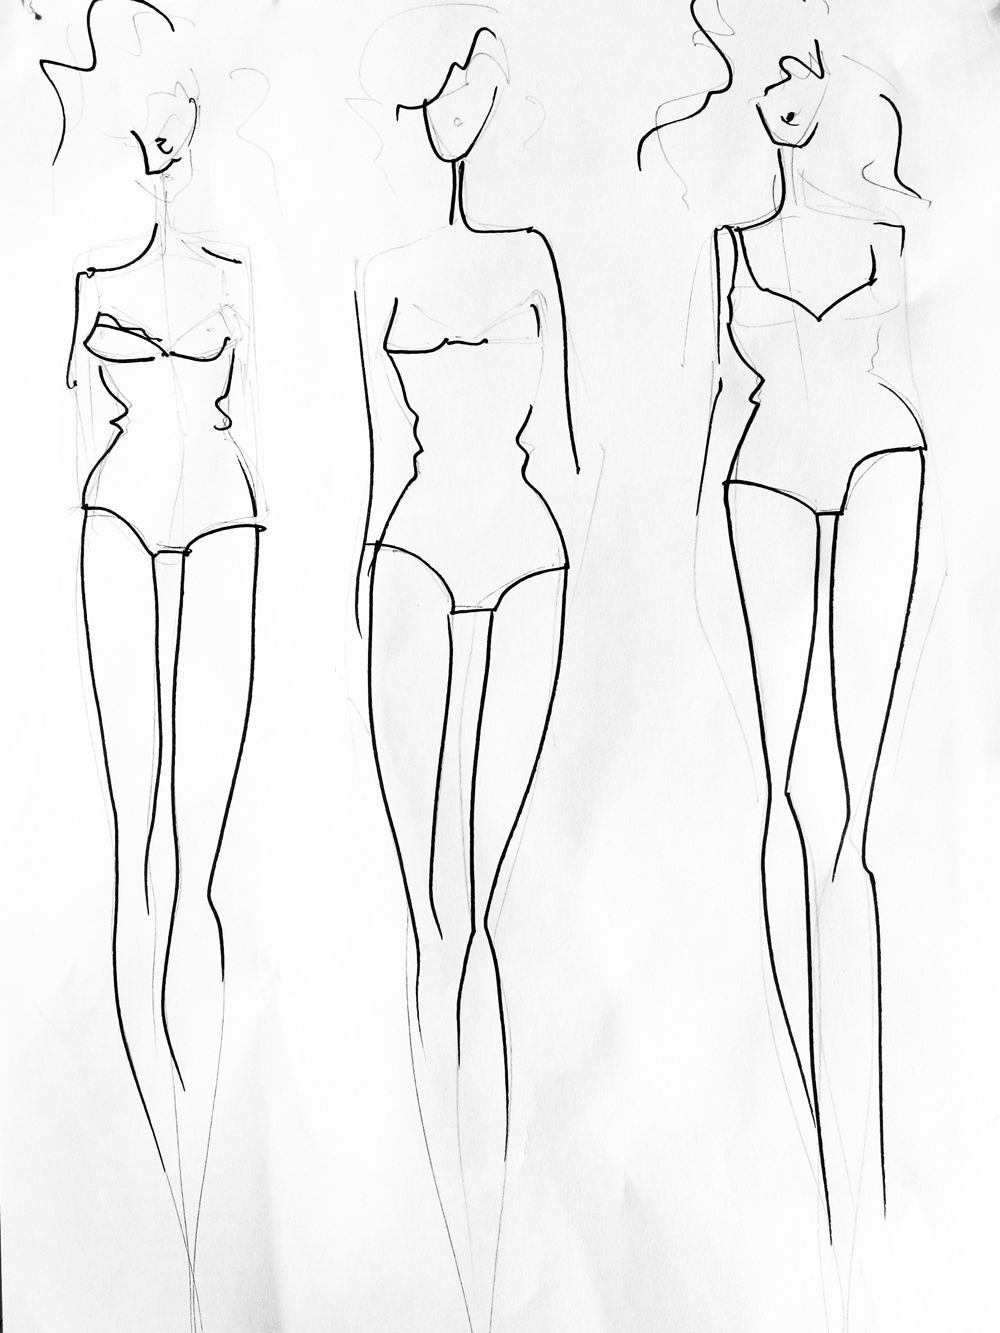 Create A Fashion Template From Your Own Body The Workshop | Diseño ...